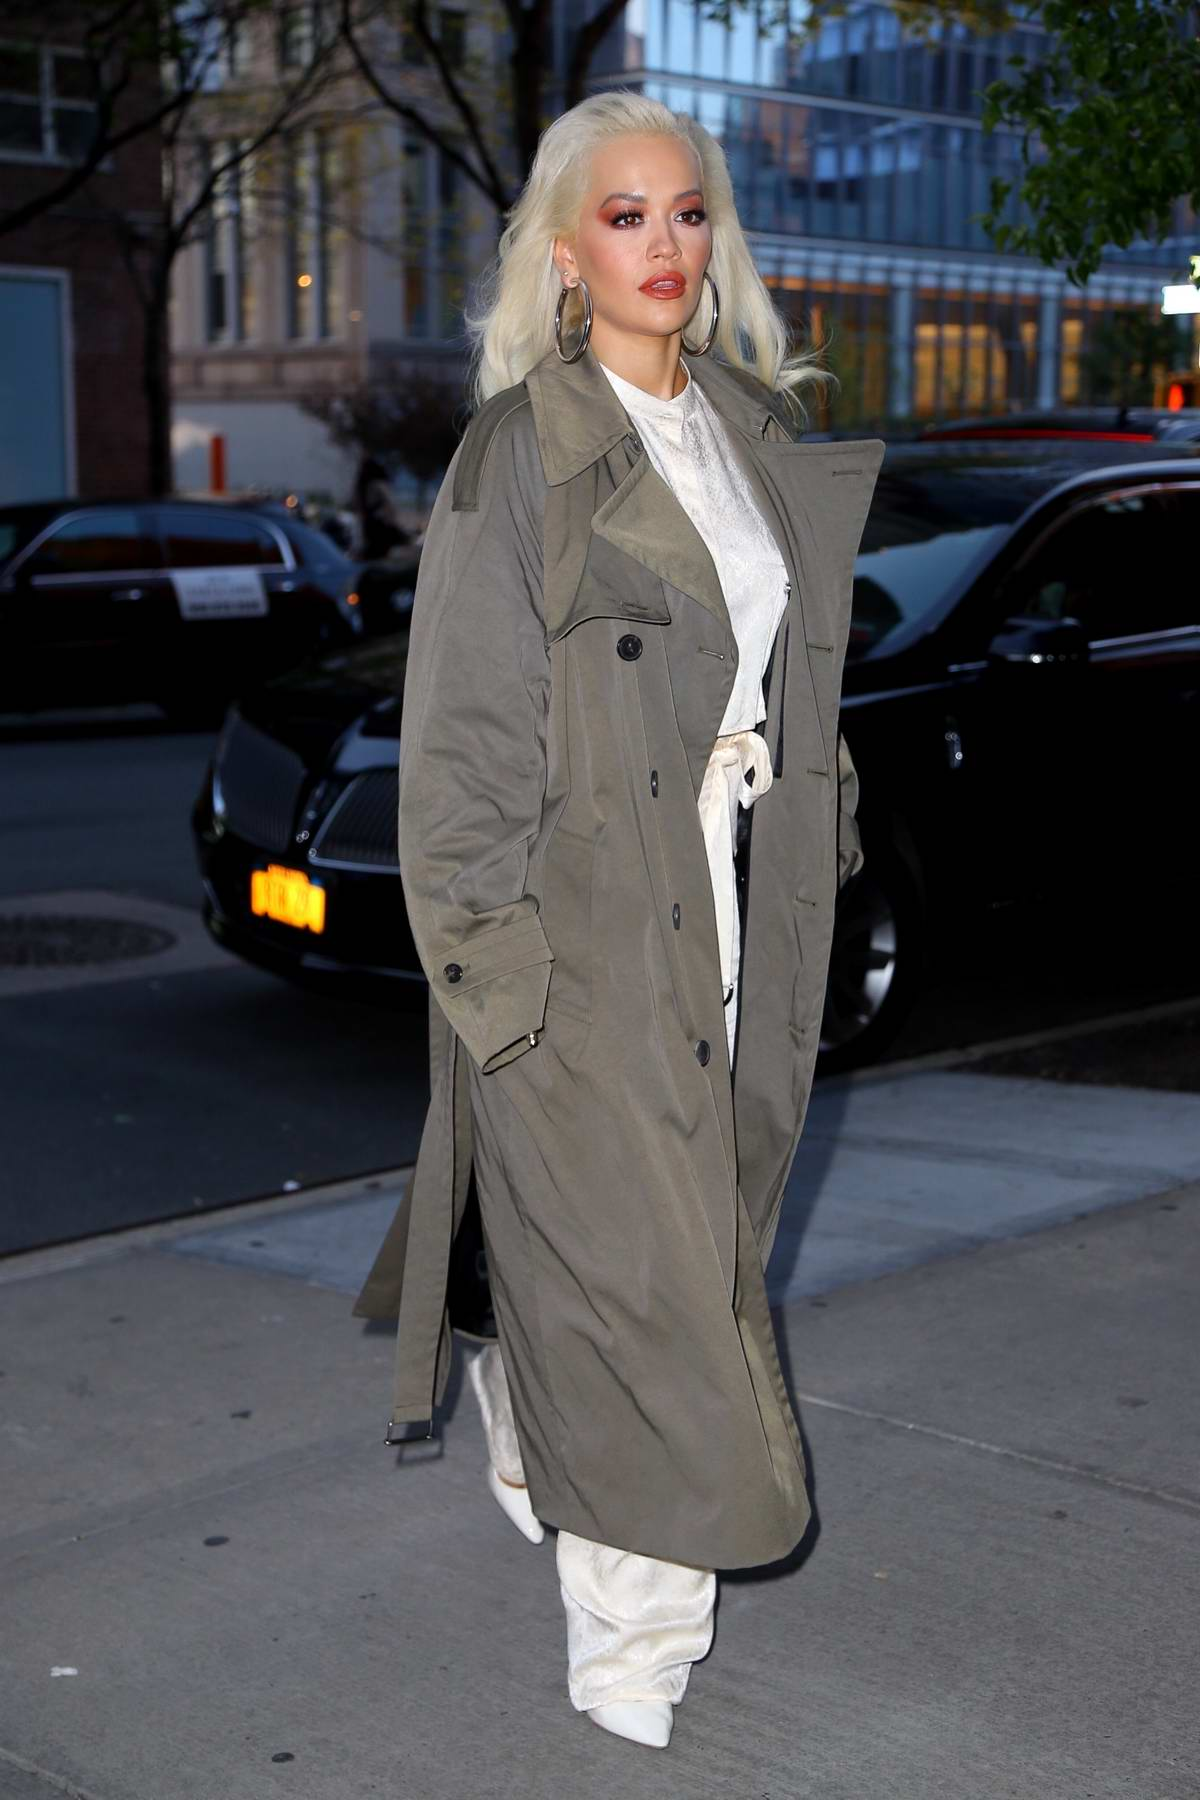 Rita Ora wears an olive green long coat with an all white outfit as she arrives at the Greenwich Hotel in New York City